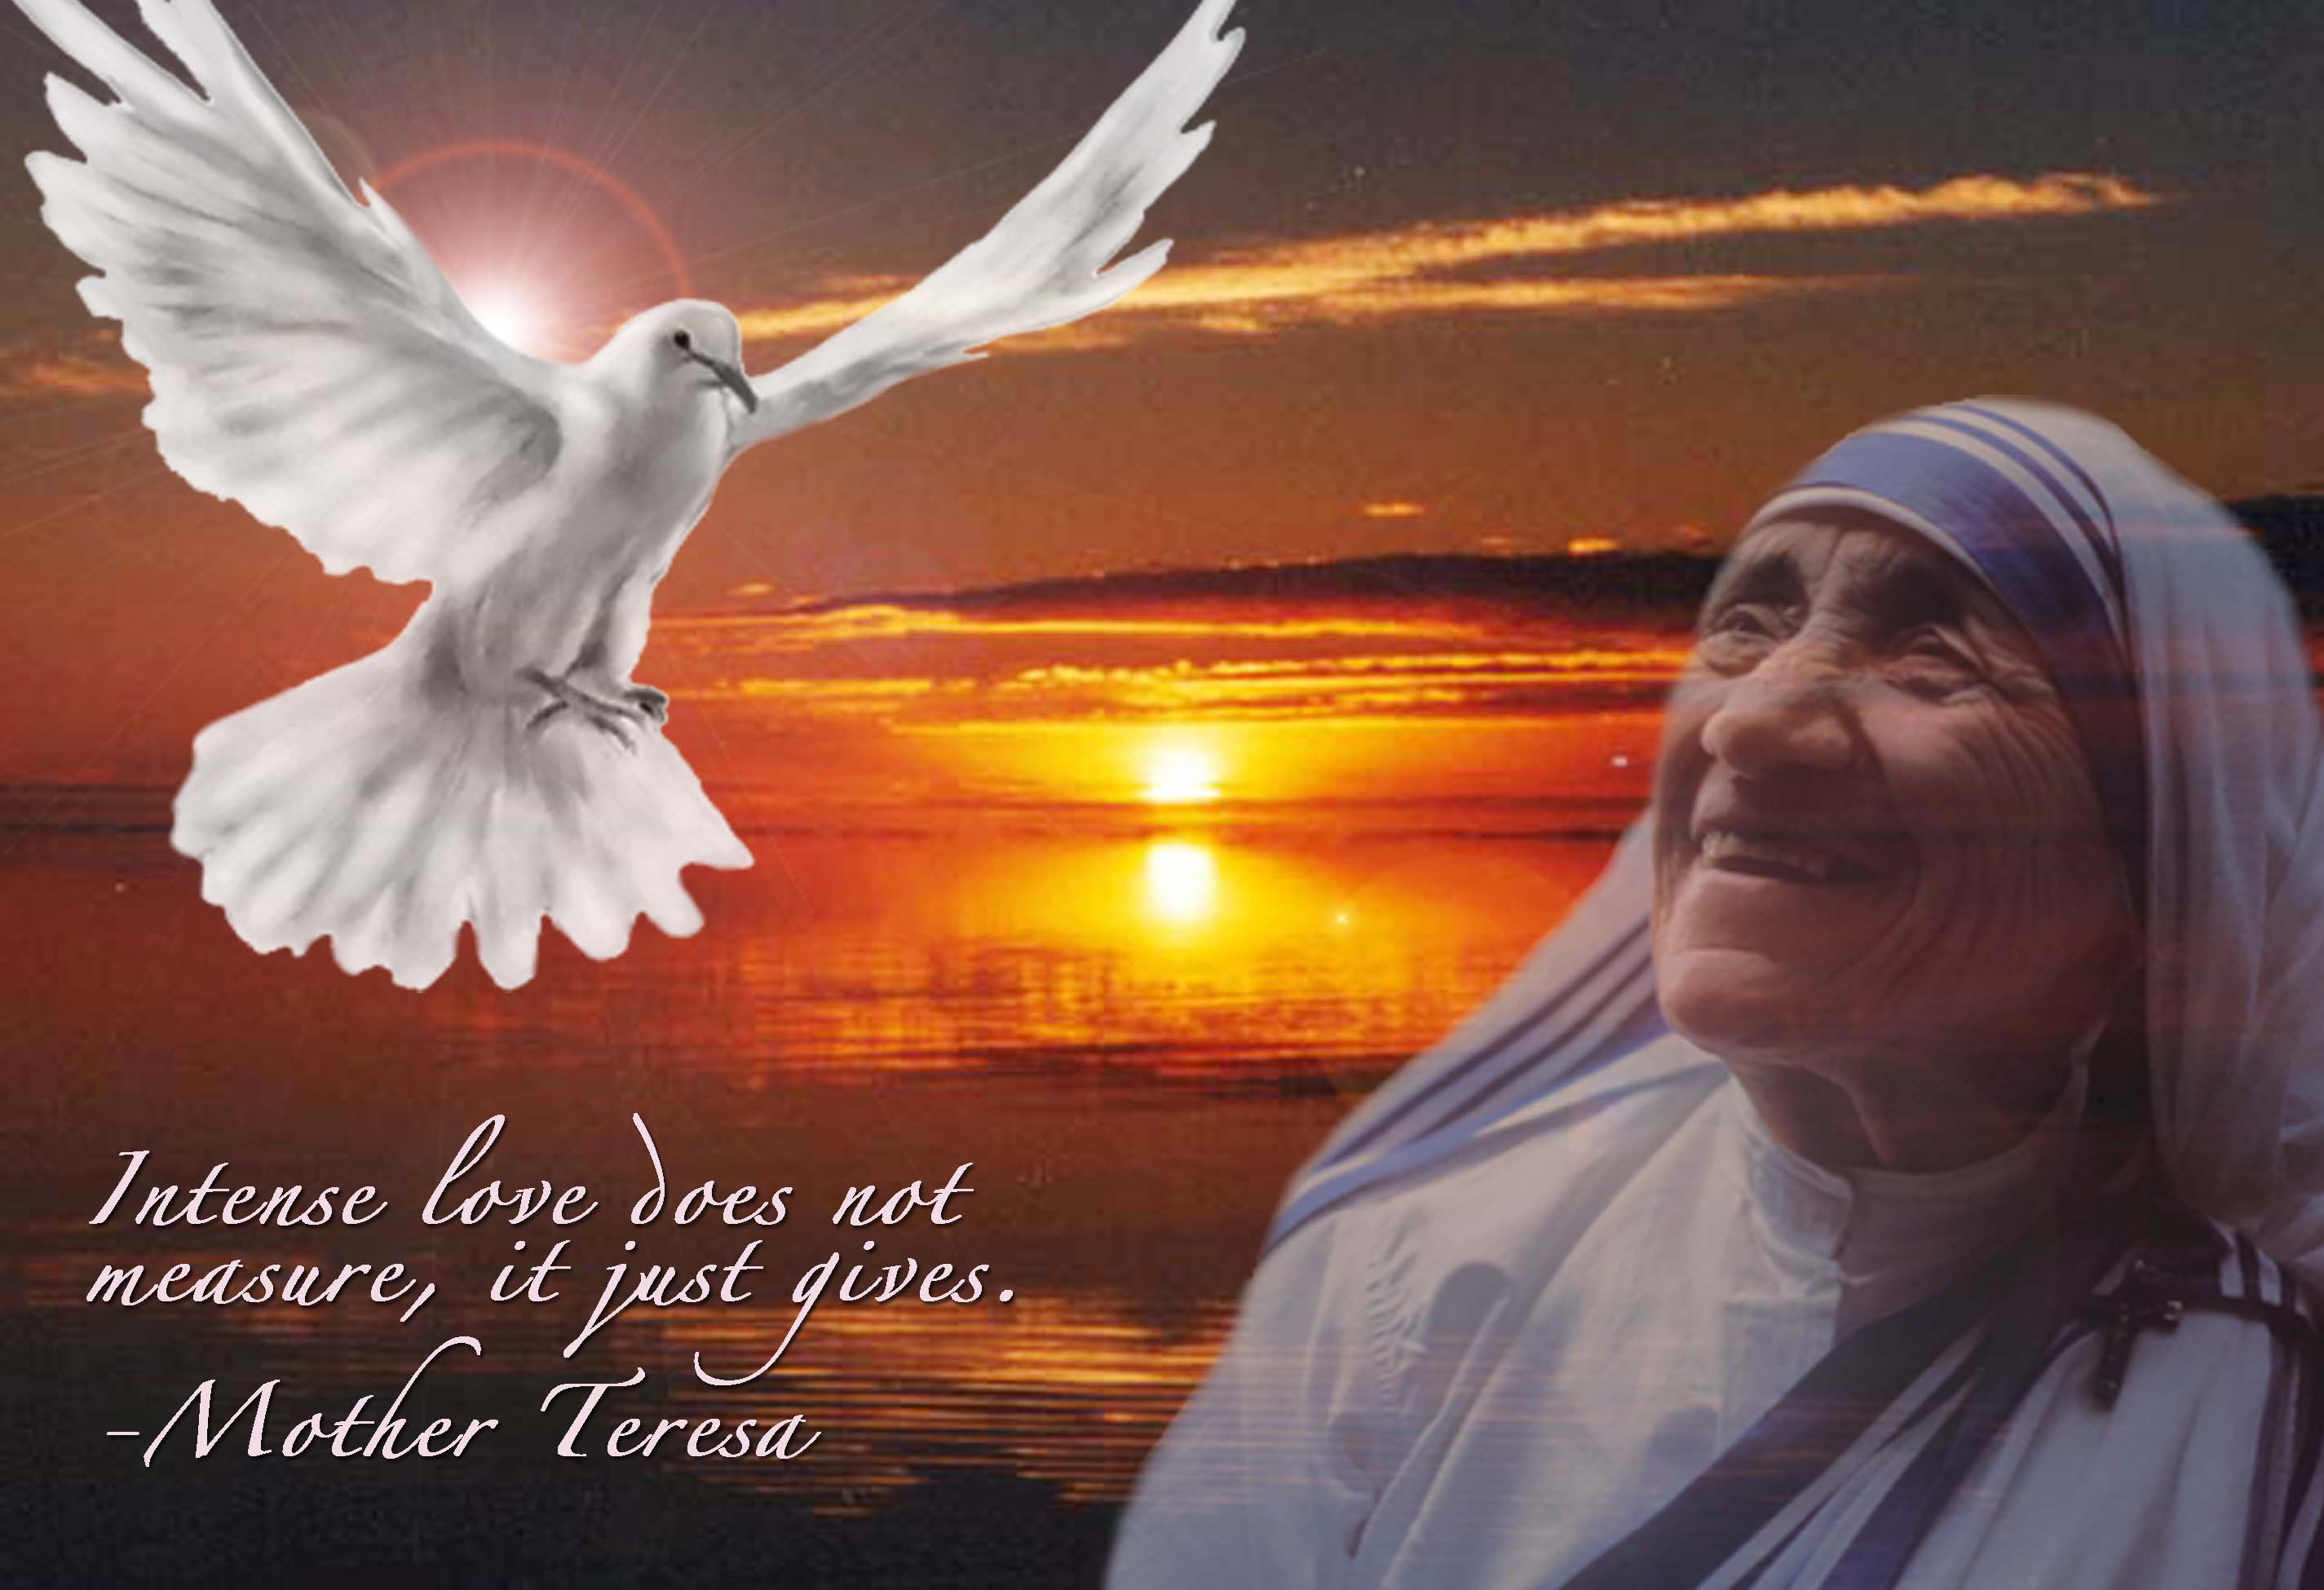 Life Quotes Mother Teresa The Life And Wisdom Of Mother Teresa Of Calcutta.